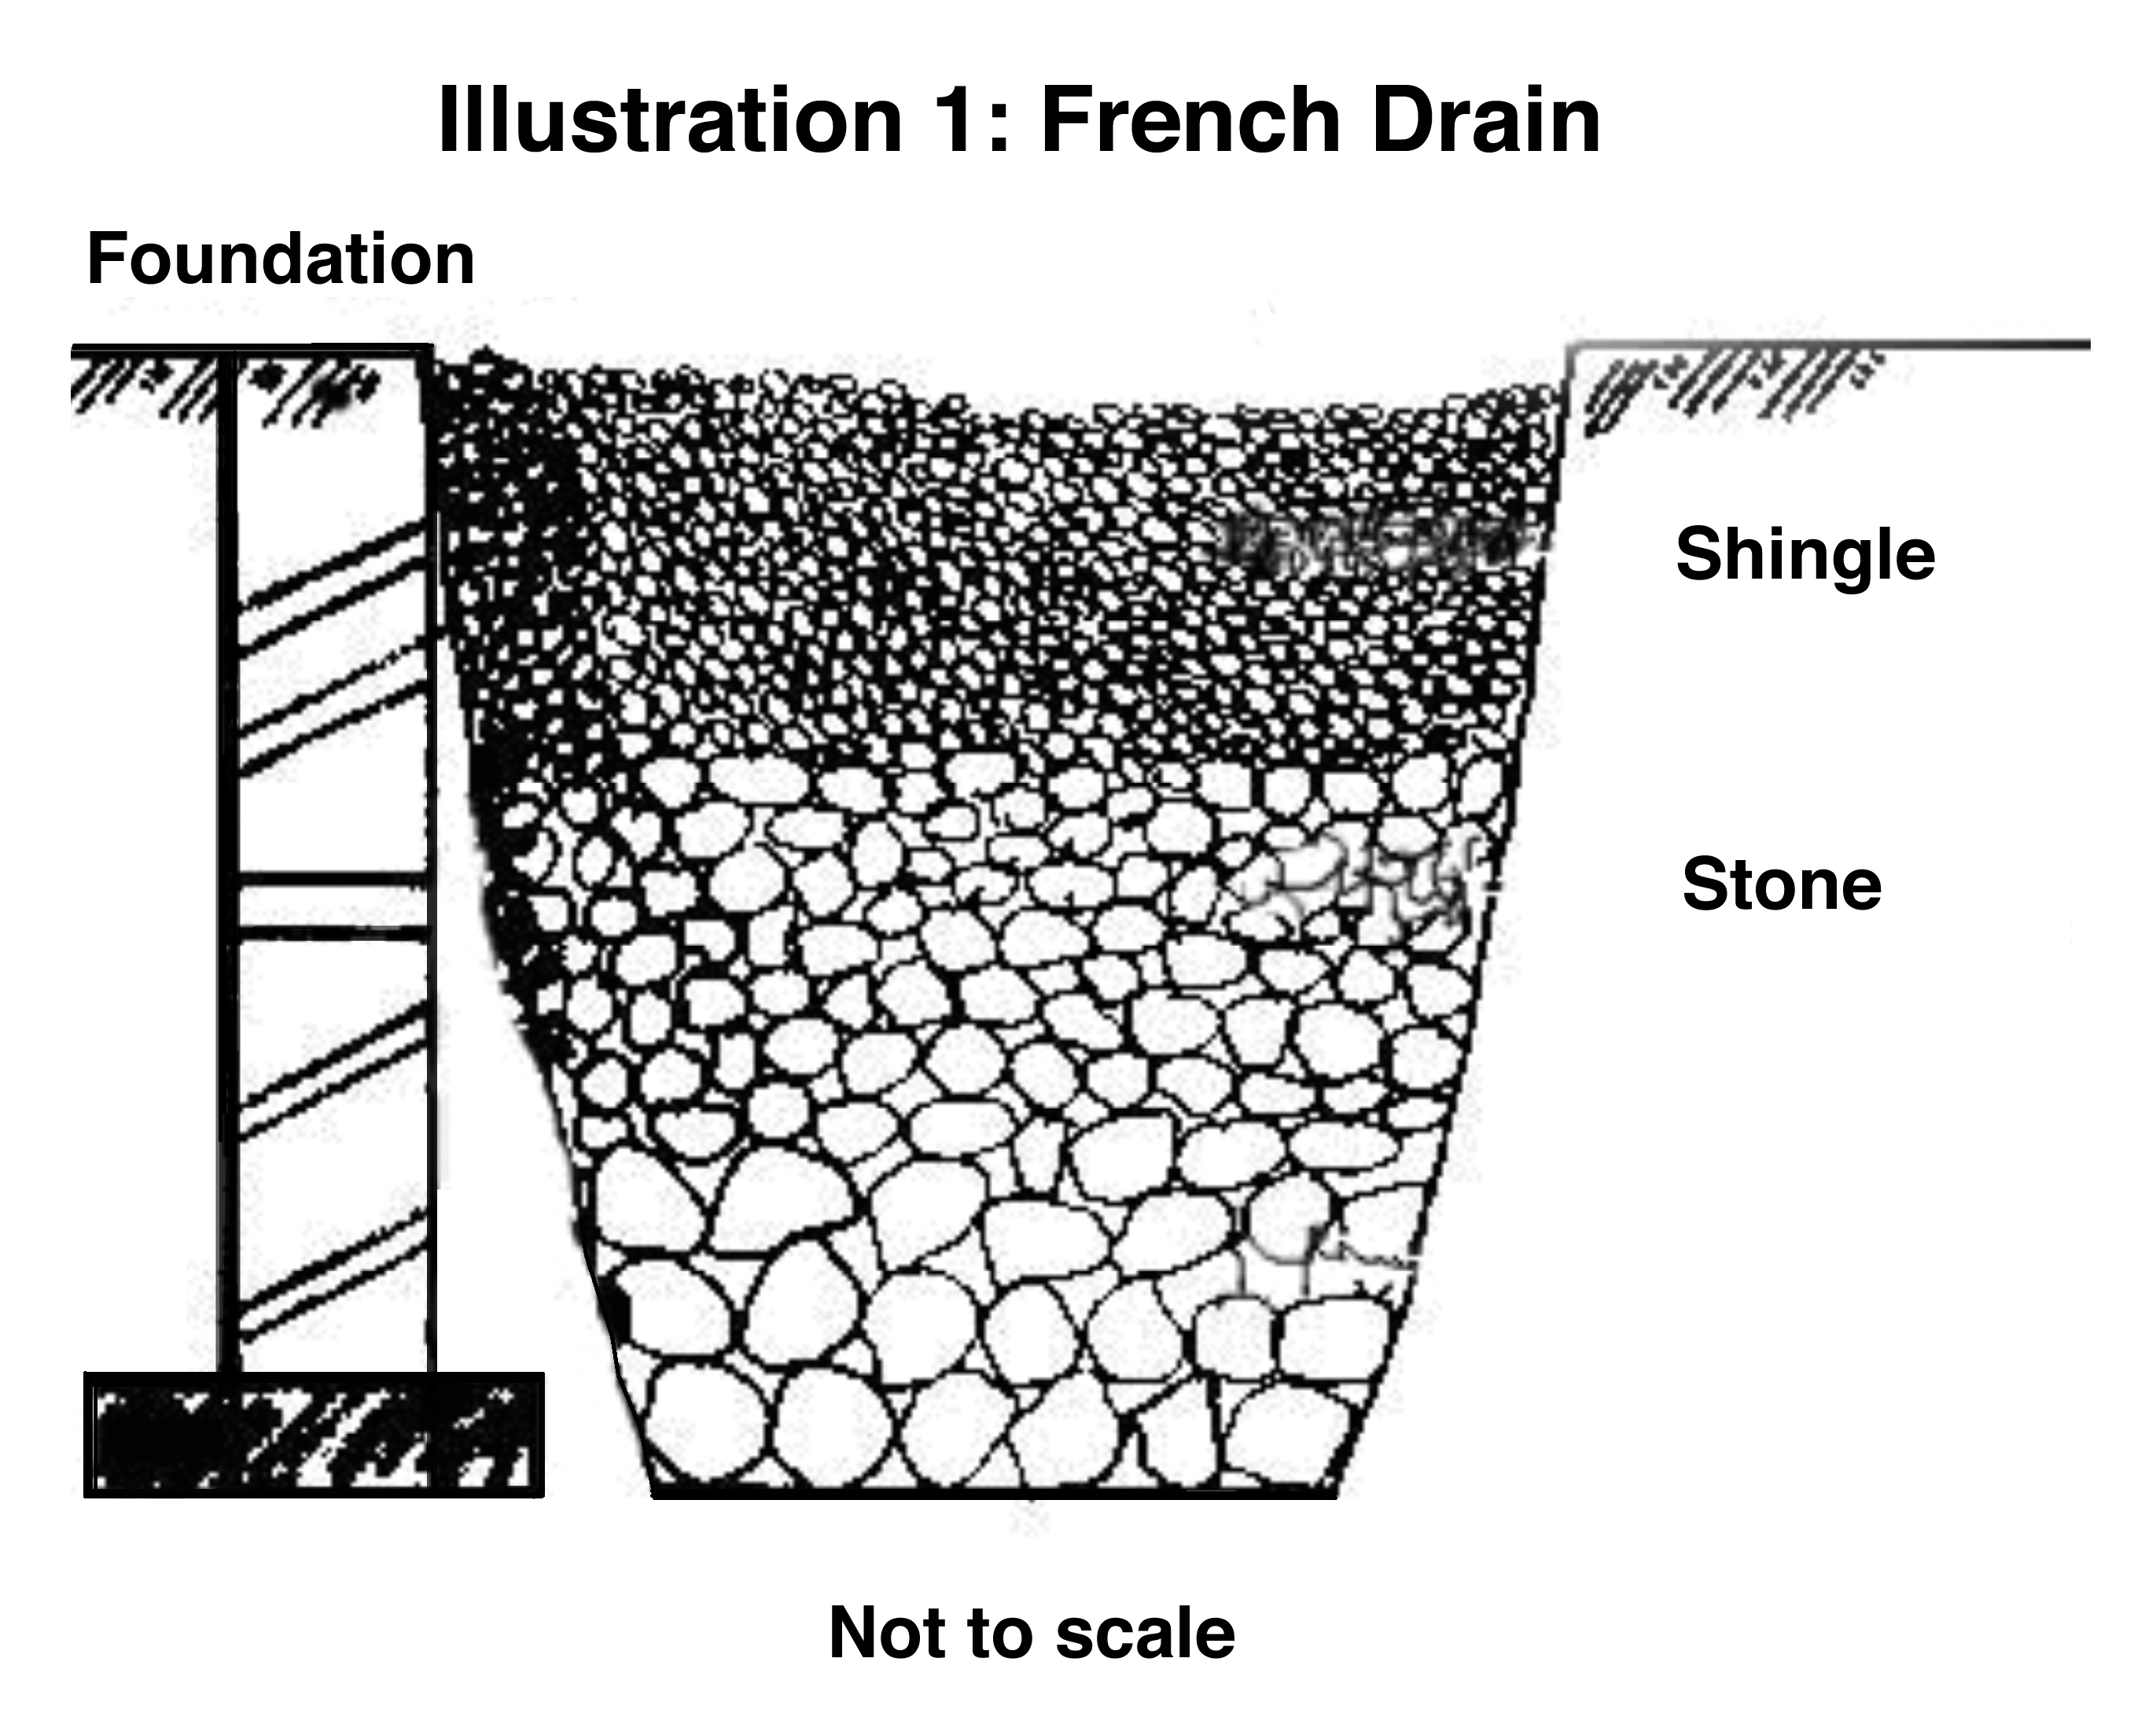 french drain design diagram 1998 ford contour svt wiring methods to prevent damage from water intrusion